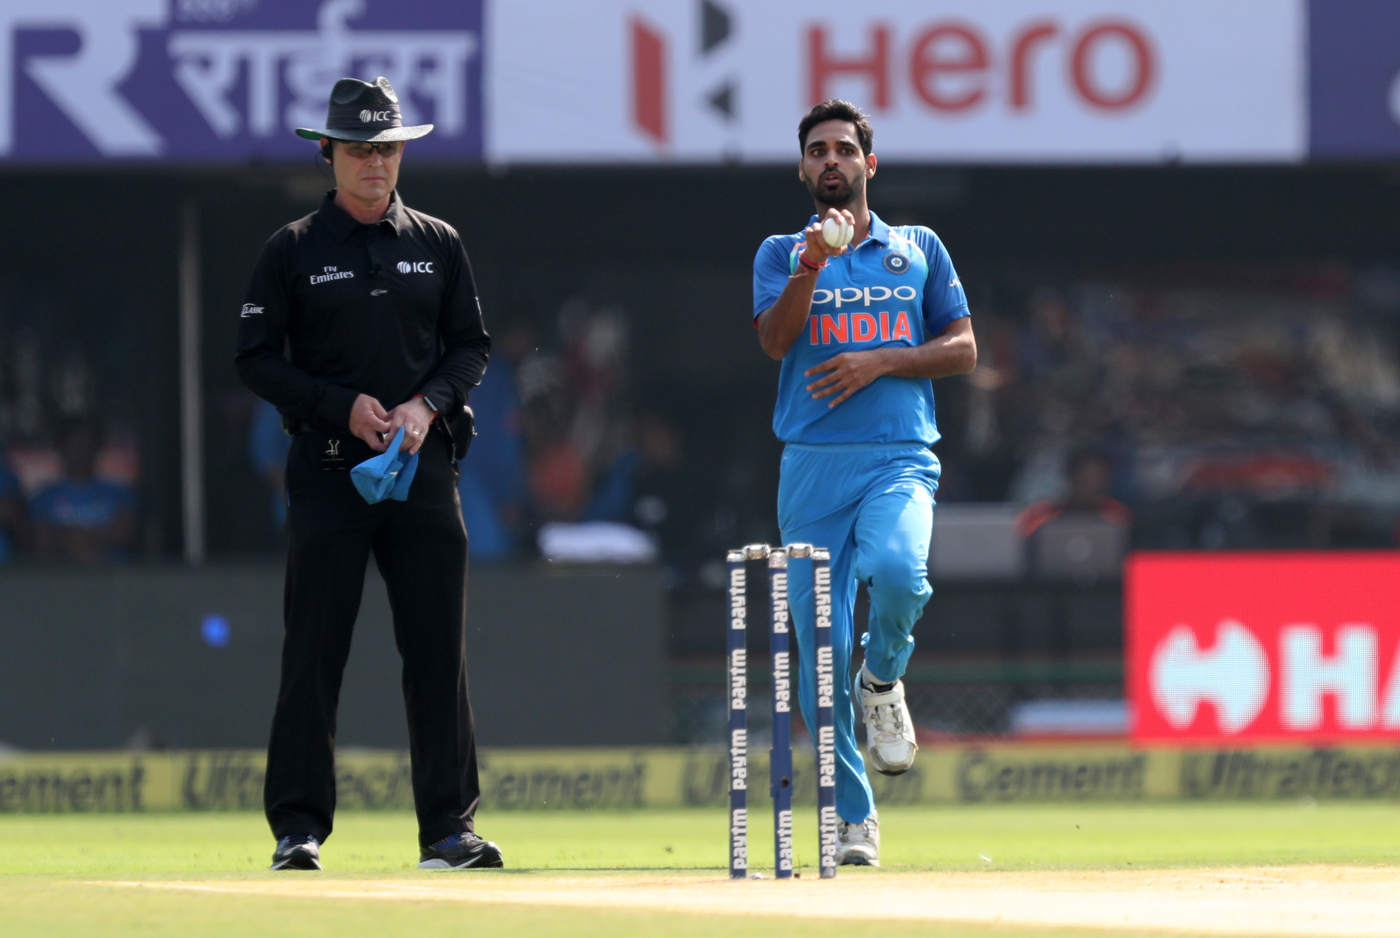 Watch: Bhuvneshwar Kumar Castles Aaron Finch With A Beauty To Pick His 100th ODI Wicket 1